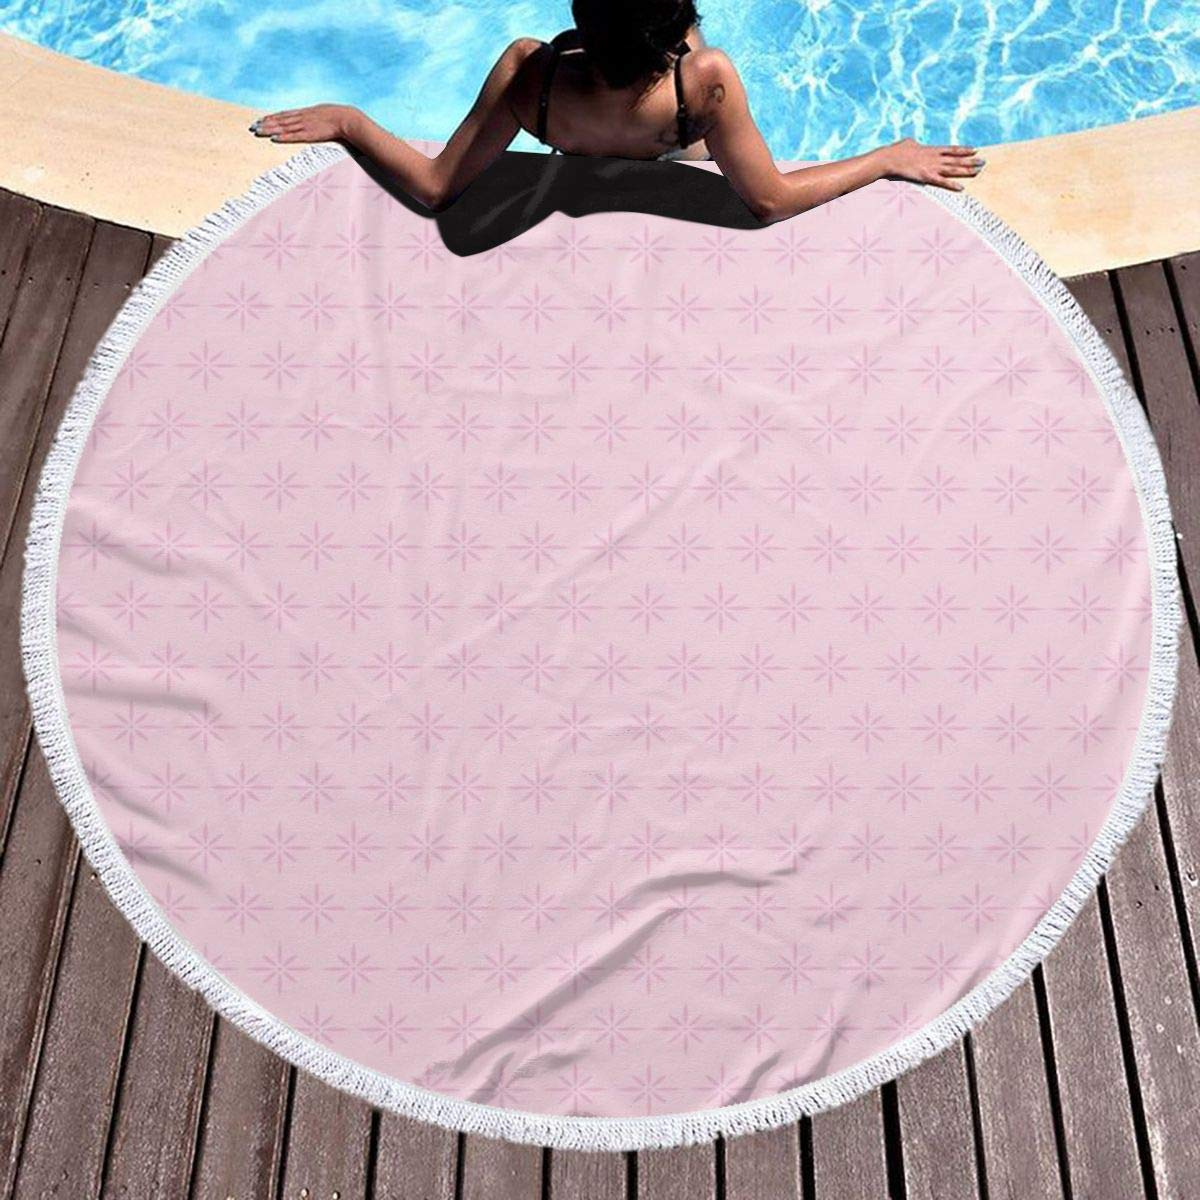 Round Beach Towel Beach Blanket,Red Sky at Night with Starry Landscape and Mountains Astrology Astronomy,Large Multi-Purpose Towel Beach Mat 59